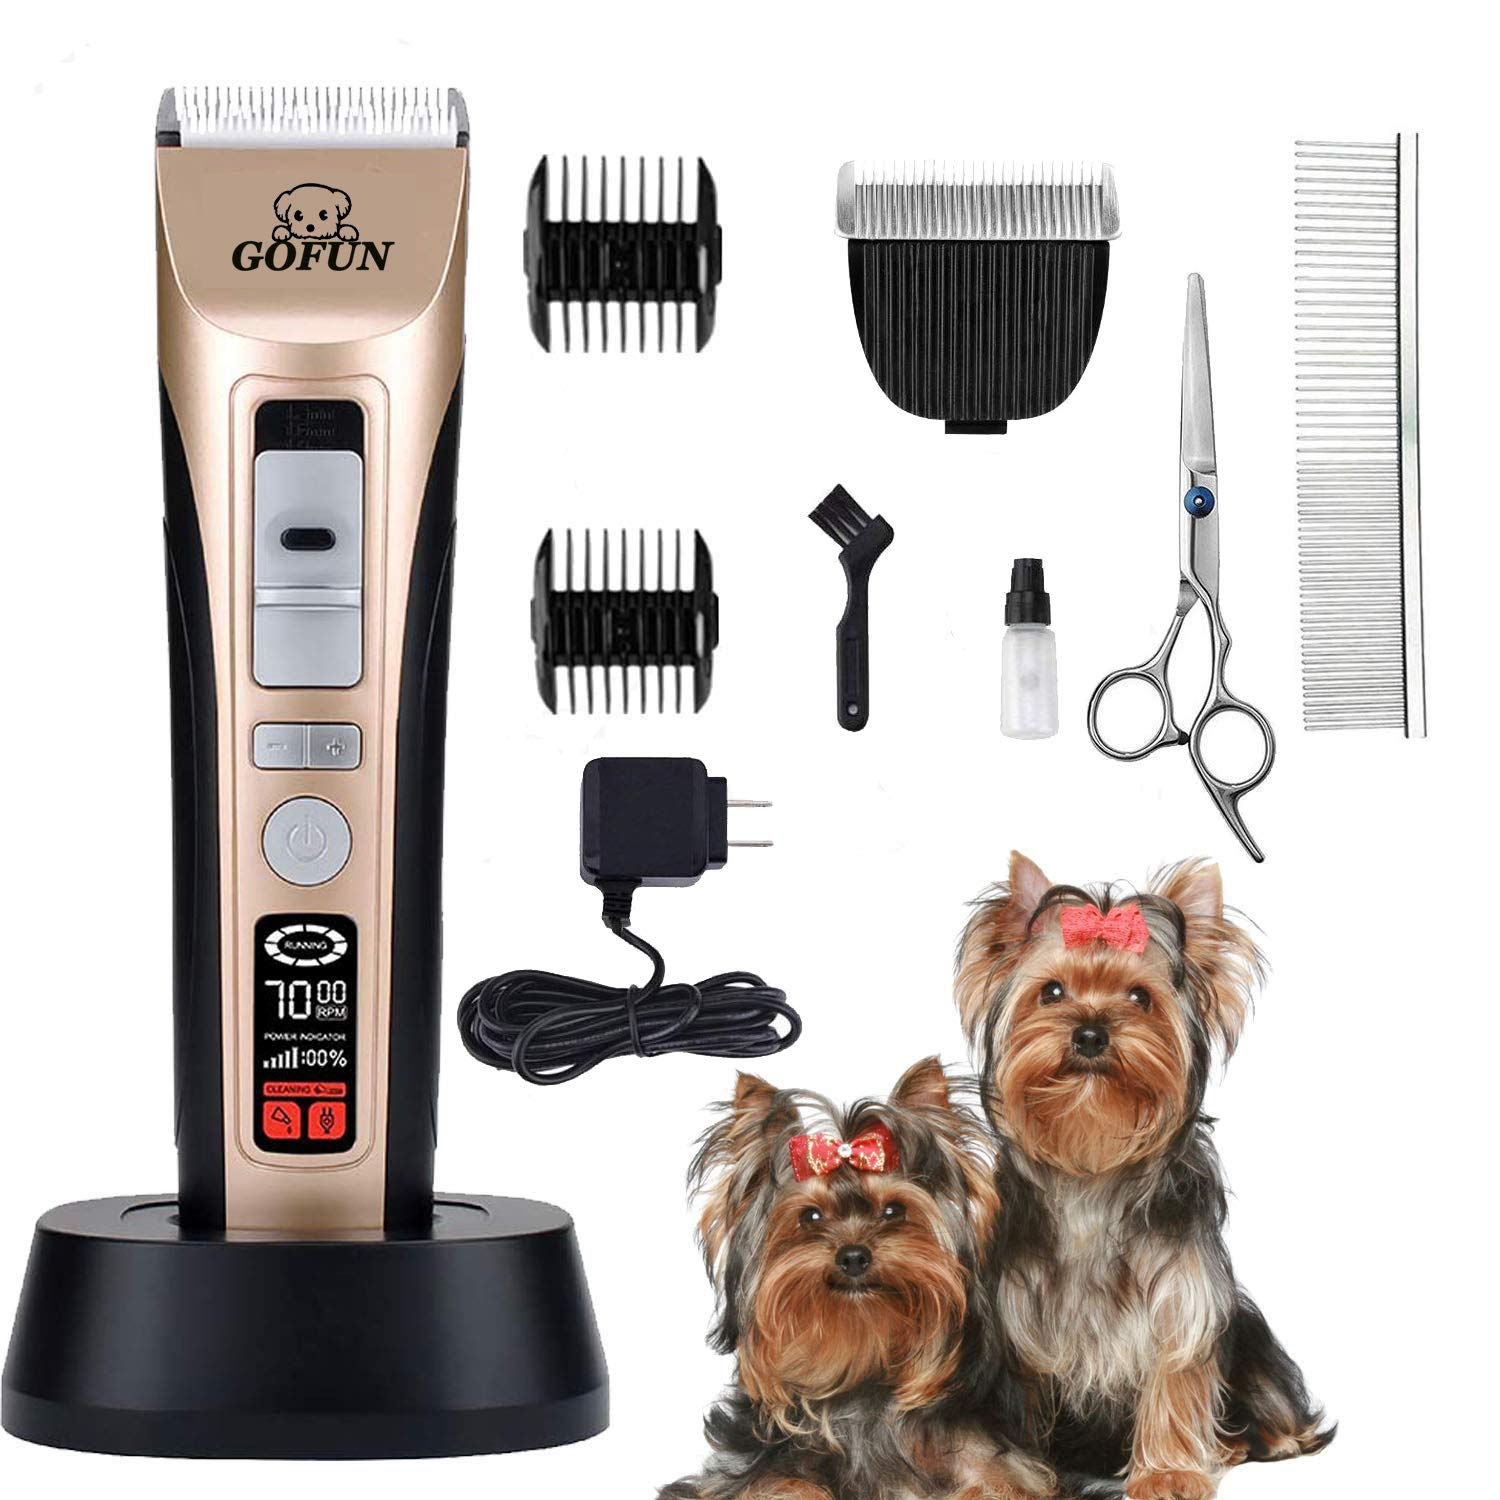 Pet Grooming Clippers - 5 Speed Cordless Low Noise Dog Shavers Clippers Powerful Dog Trimmer Rechargeable Pet Dog Hair Clippers Electric Hair Clippers Set for Dogs Cats,Pets, 2 Shaving Blades (Gold1)